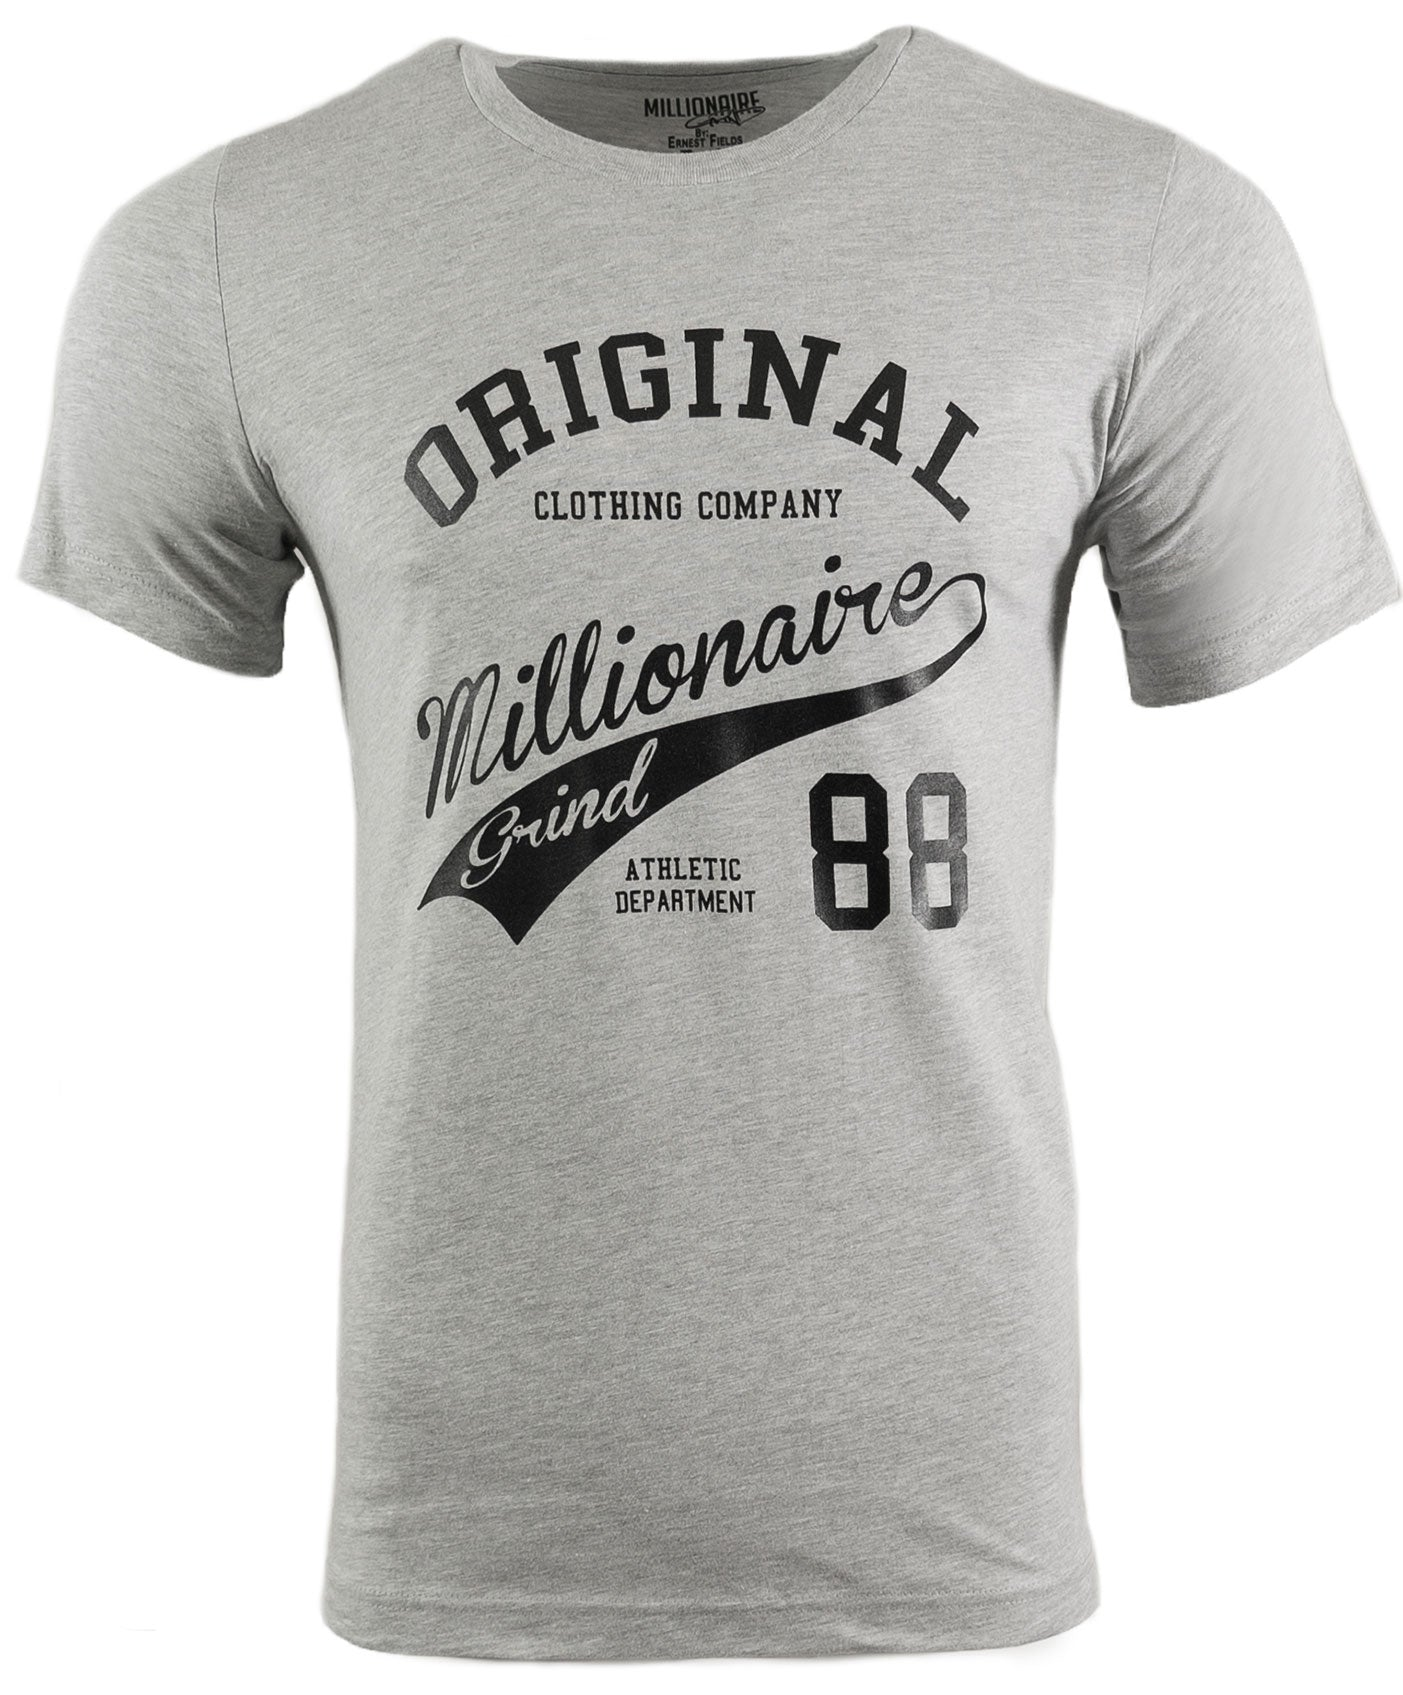 Original MG Tee - (Grey / Black)